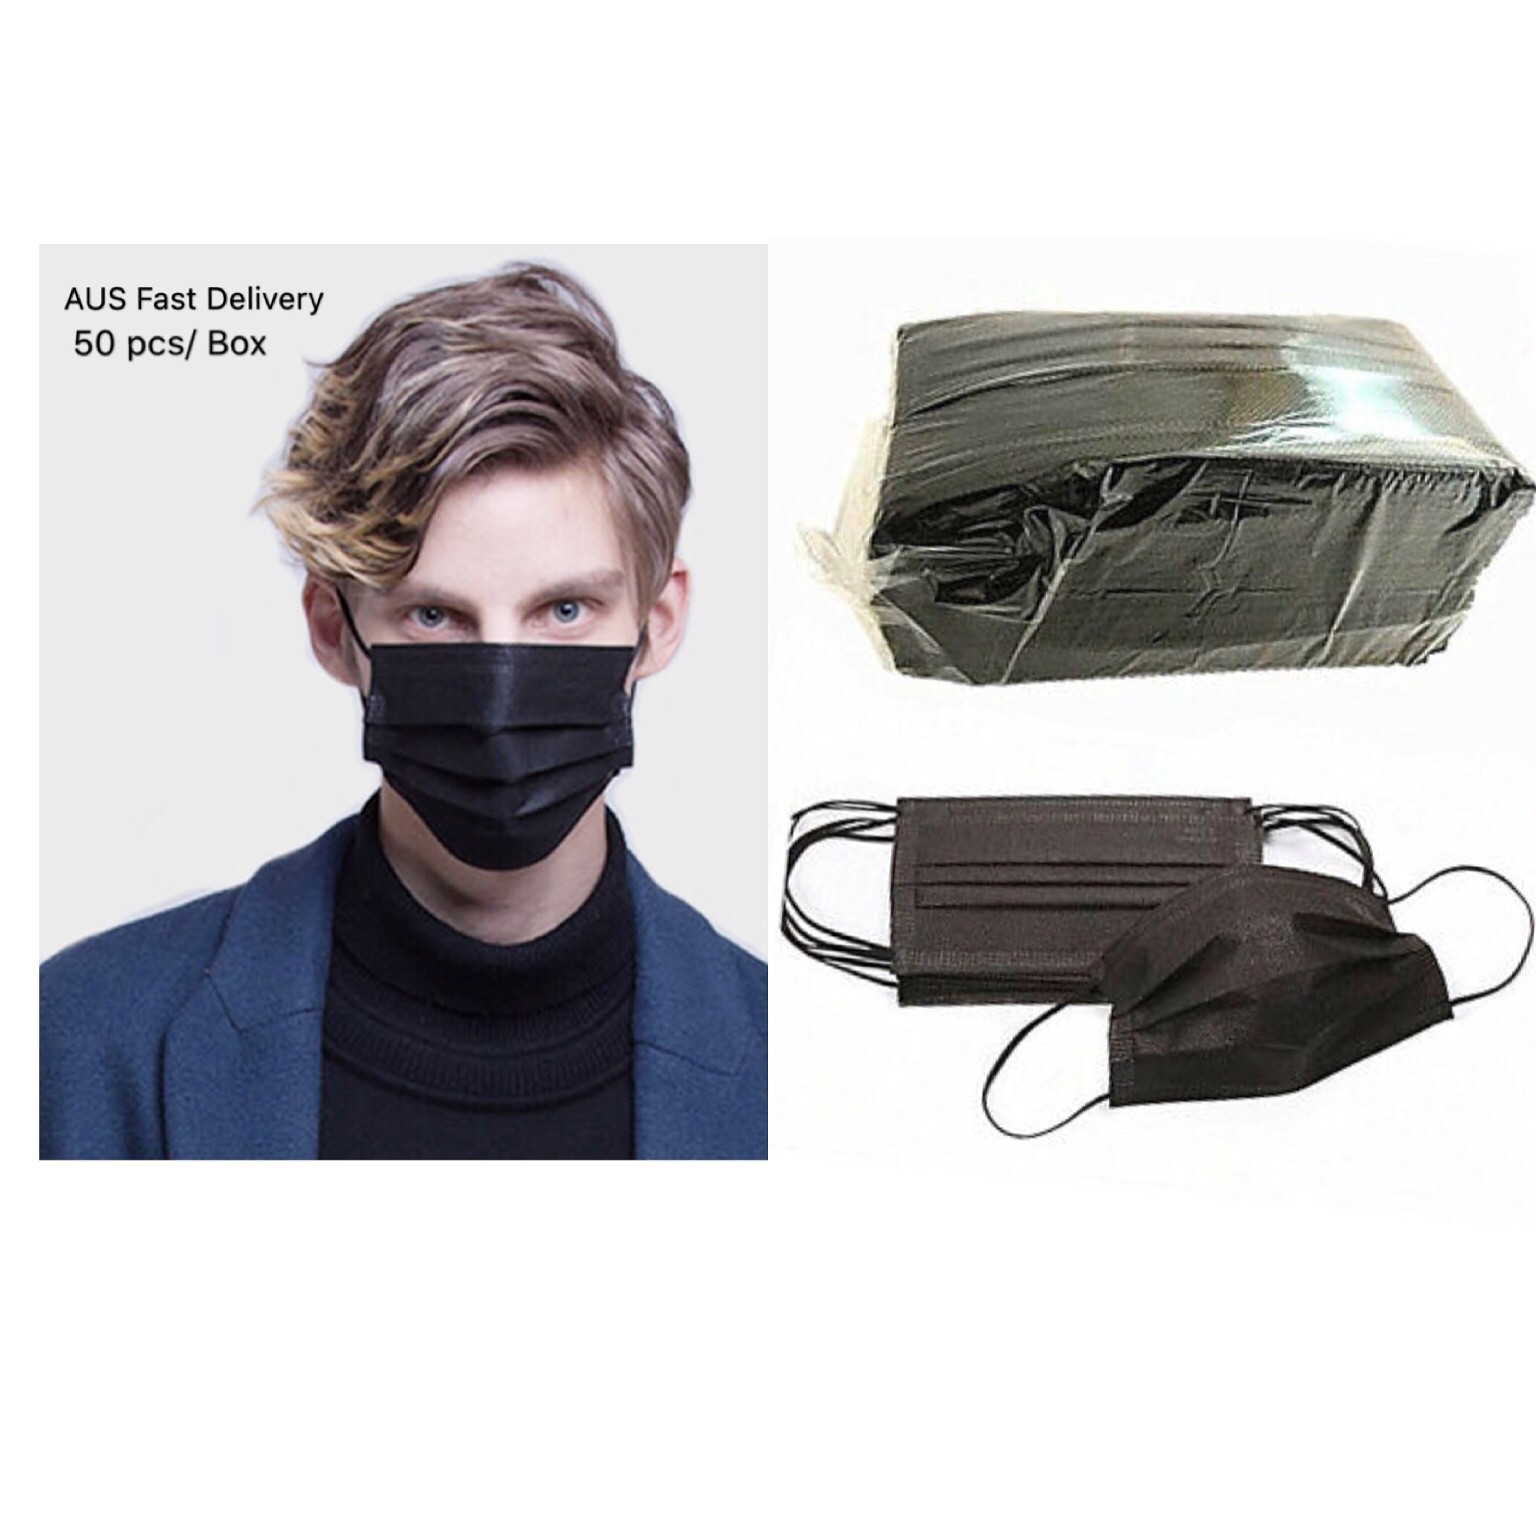 LEVEL 1 TYPE I Disposable BLACK Face Mask, Protective Face Mask Wholesale Supply General Protective Purpose